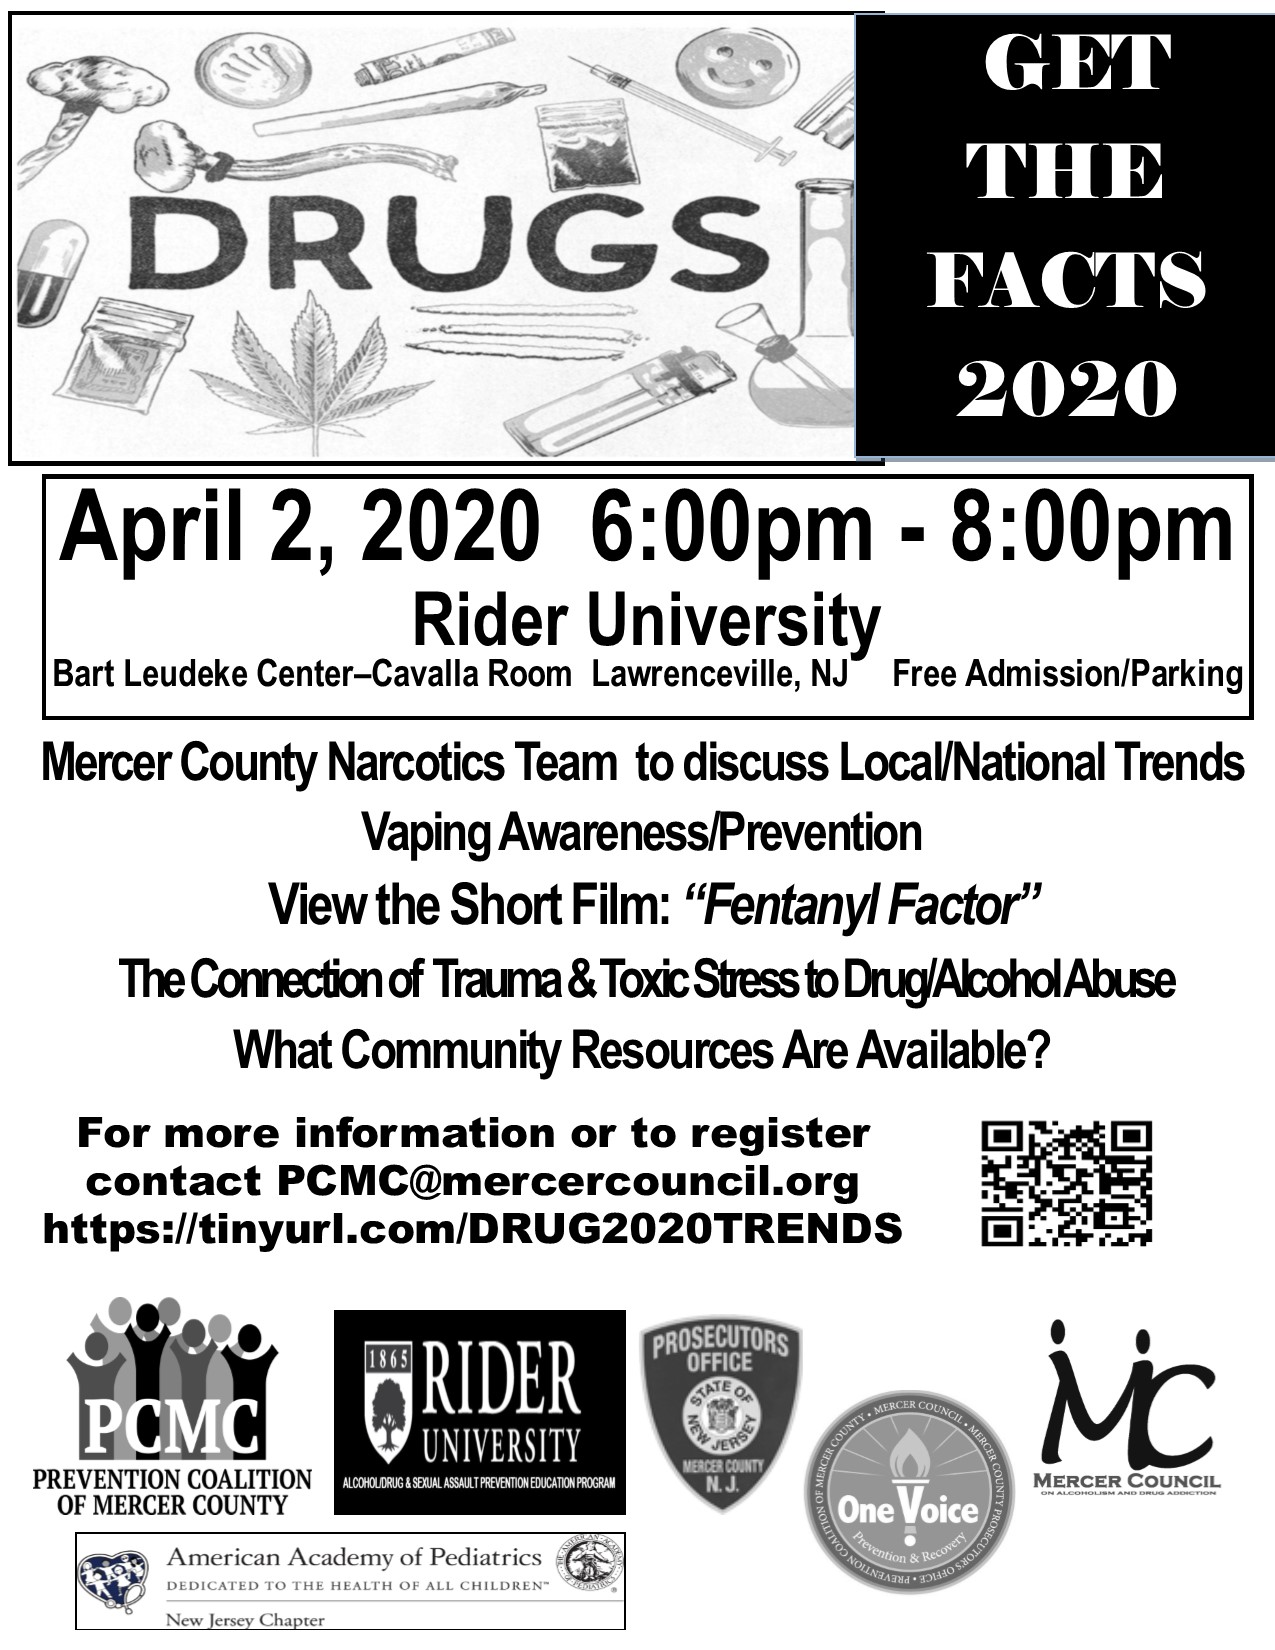 2020 Rider Drug Trends Get The Facts Flyer